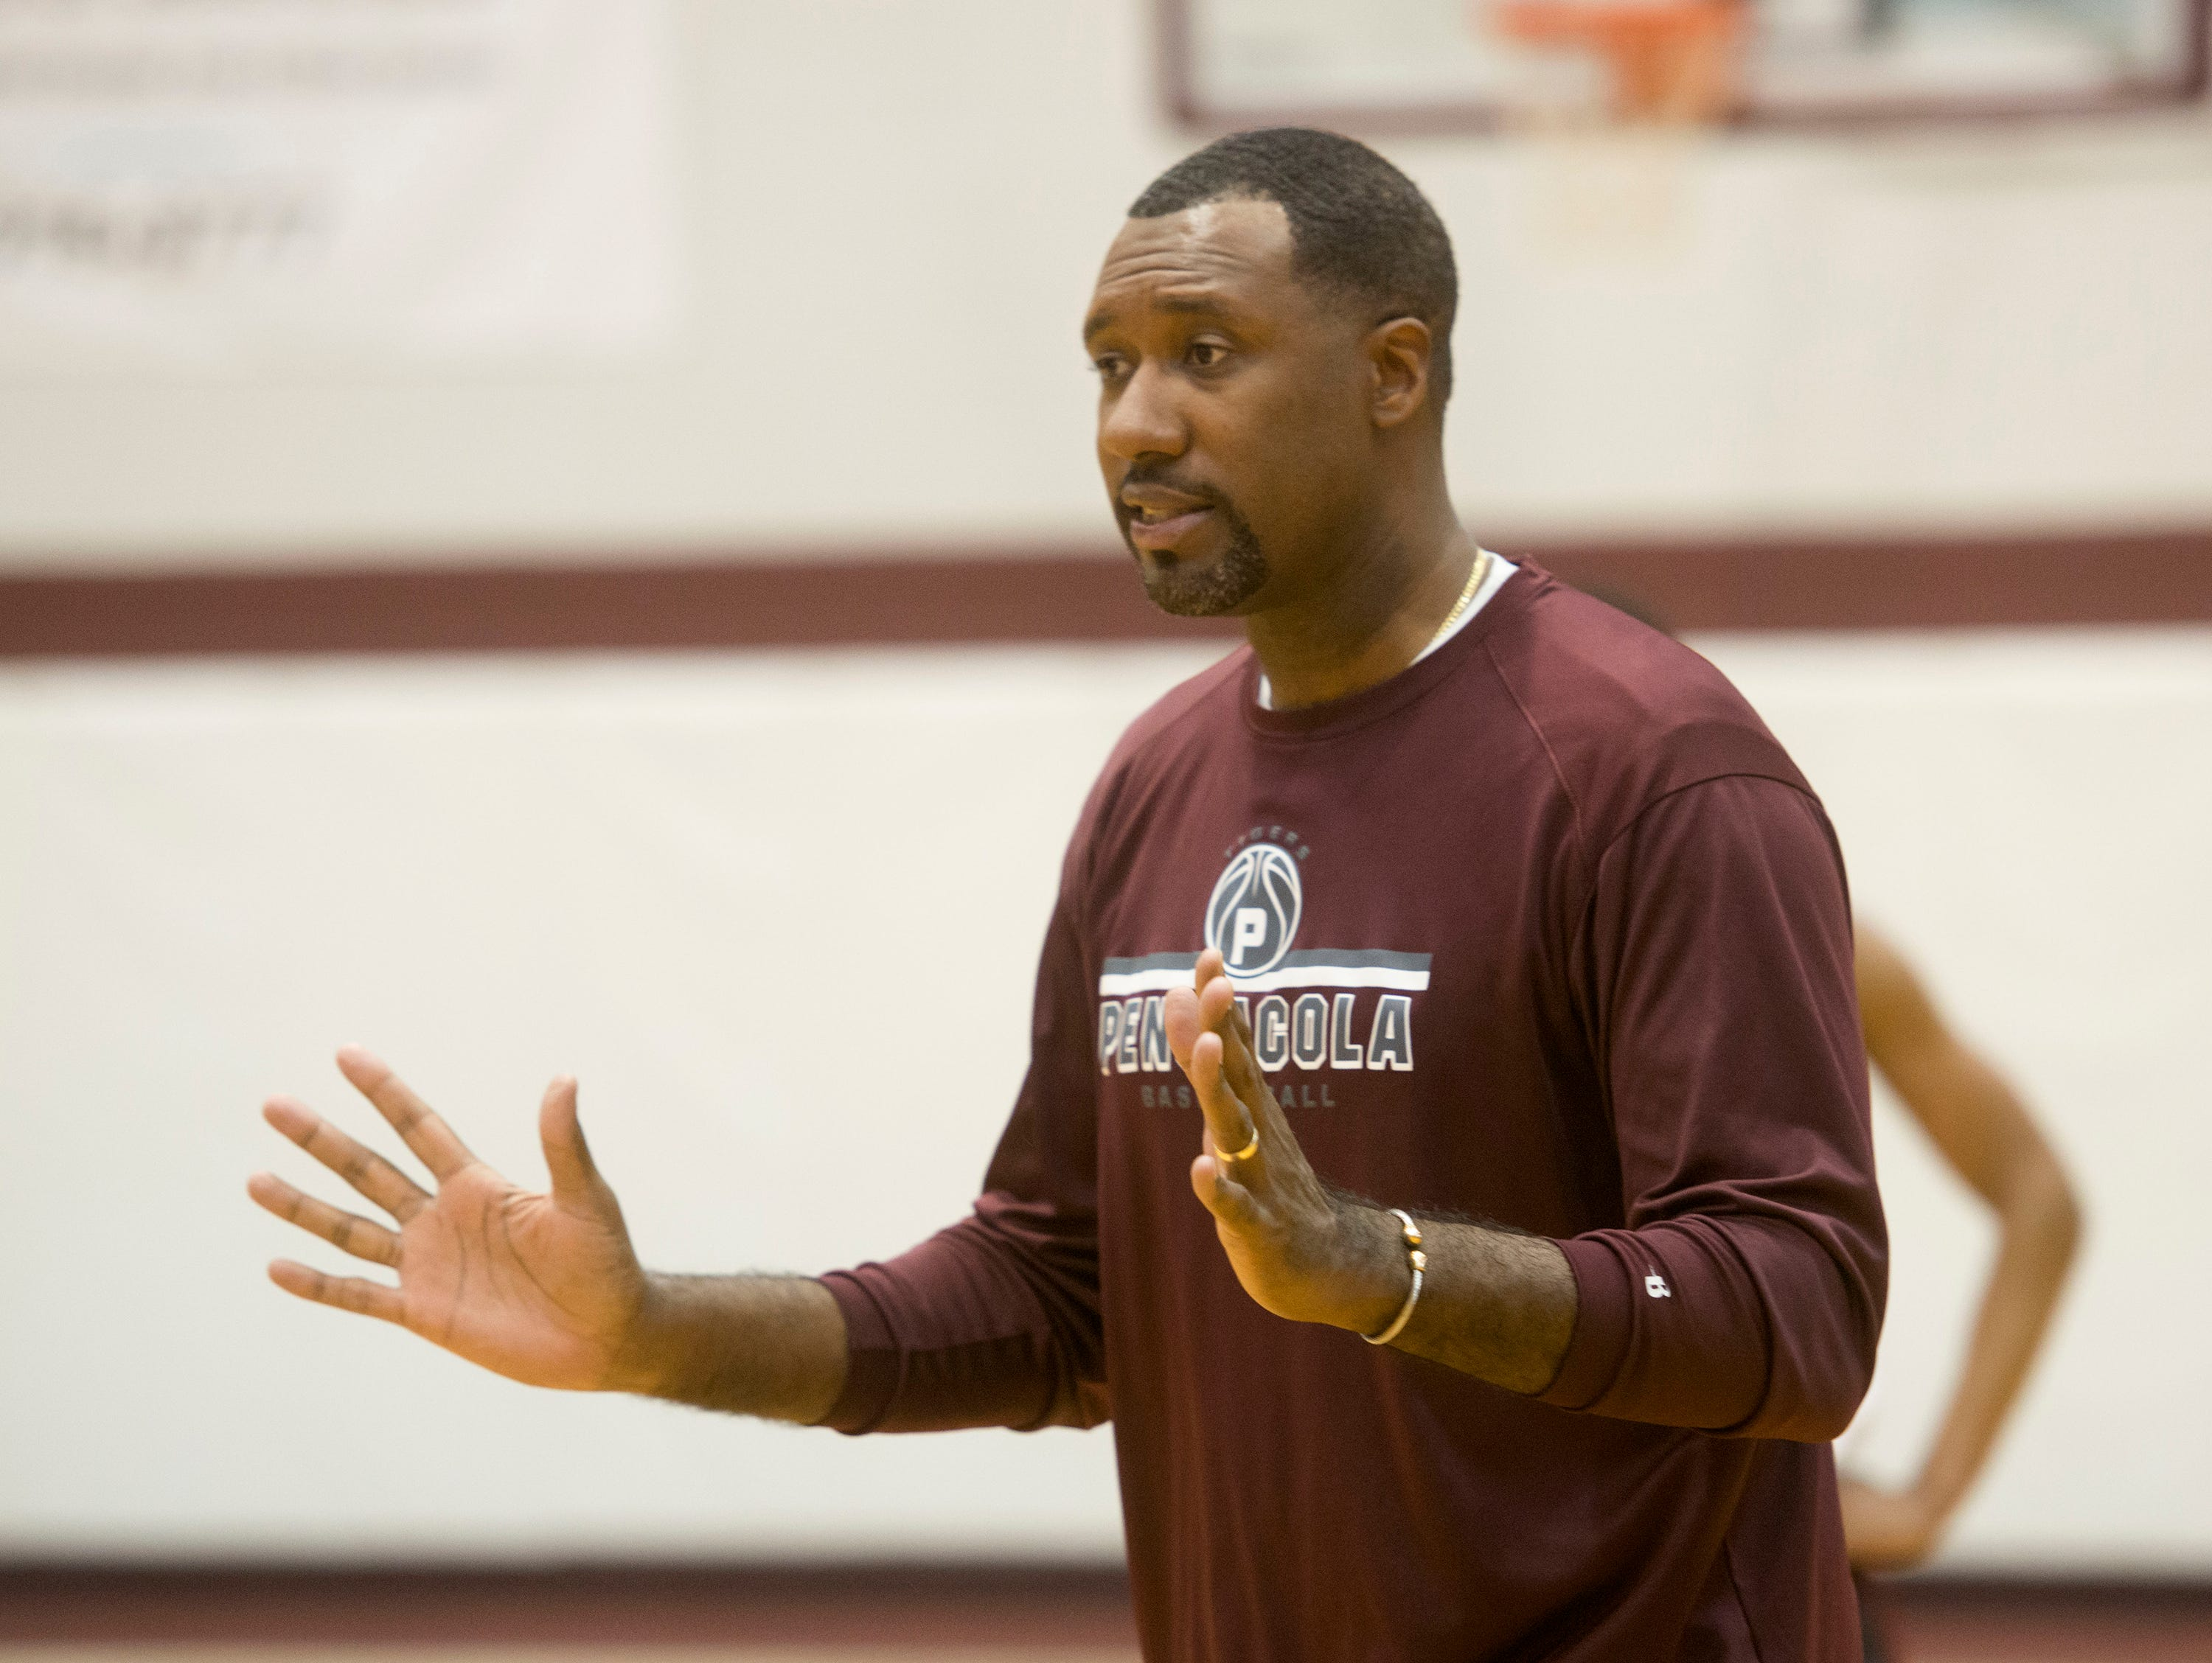 Pensacola High School Basketball coach, Terrence Harris, works to get his team ready for the State 6A Semifinals game in Lakeland.